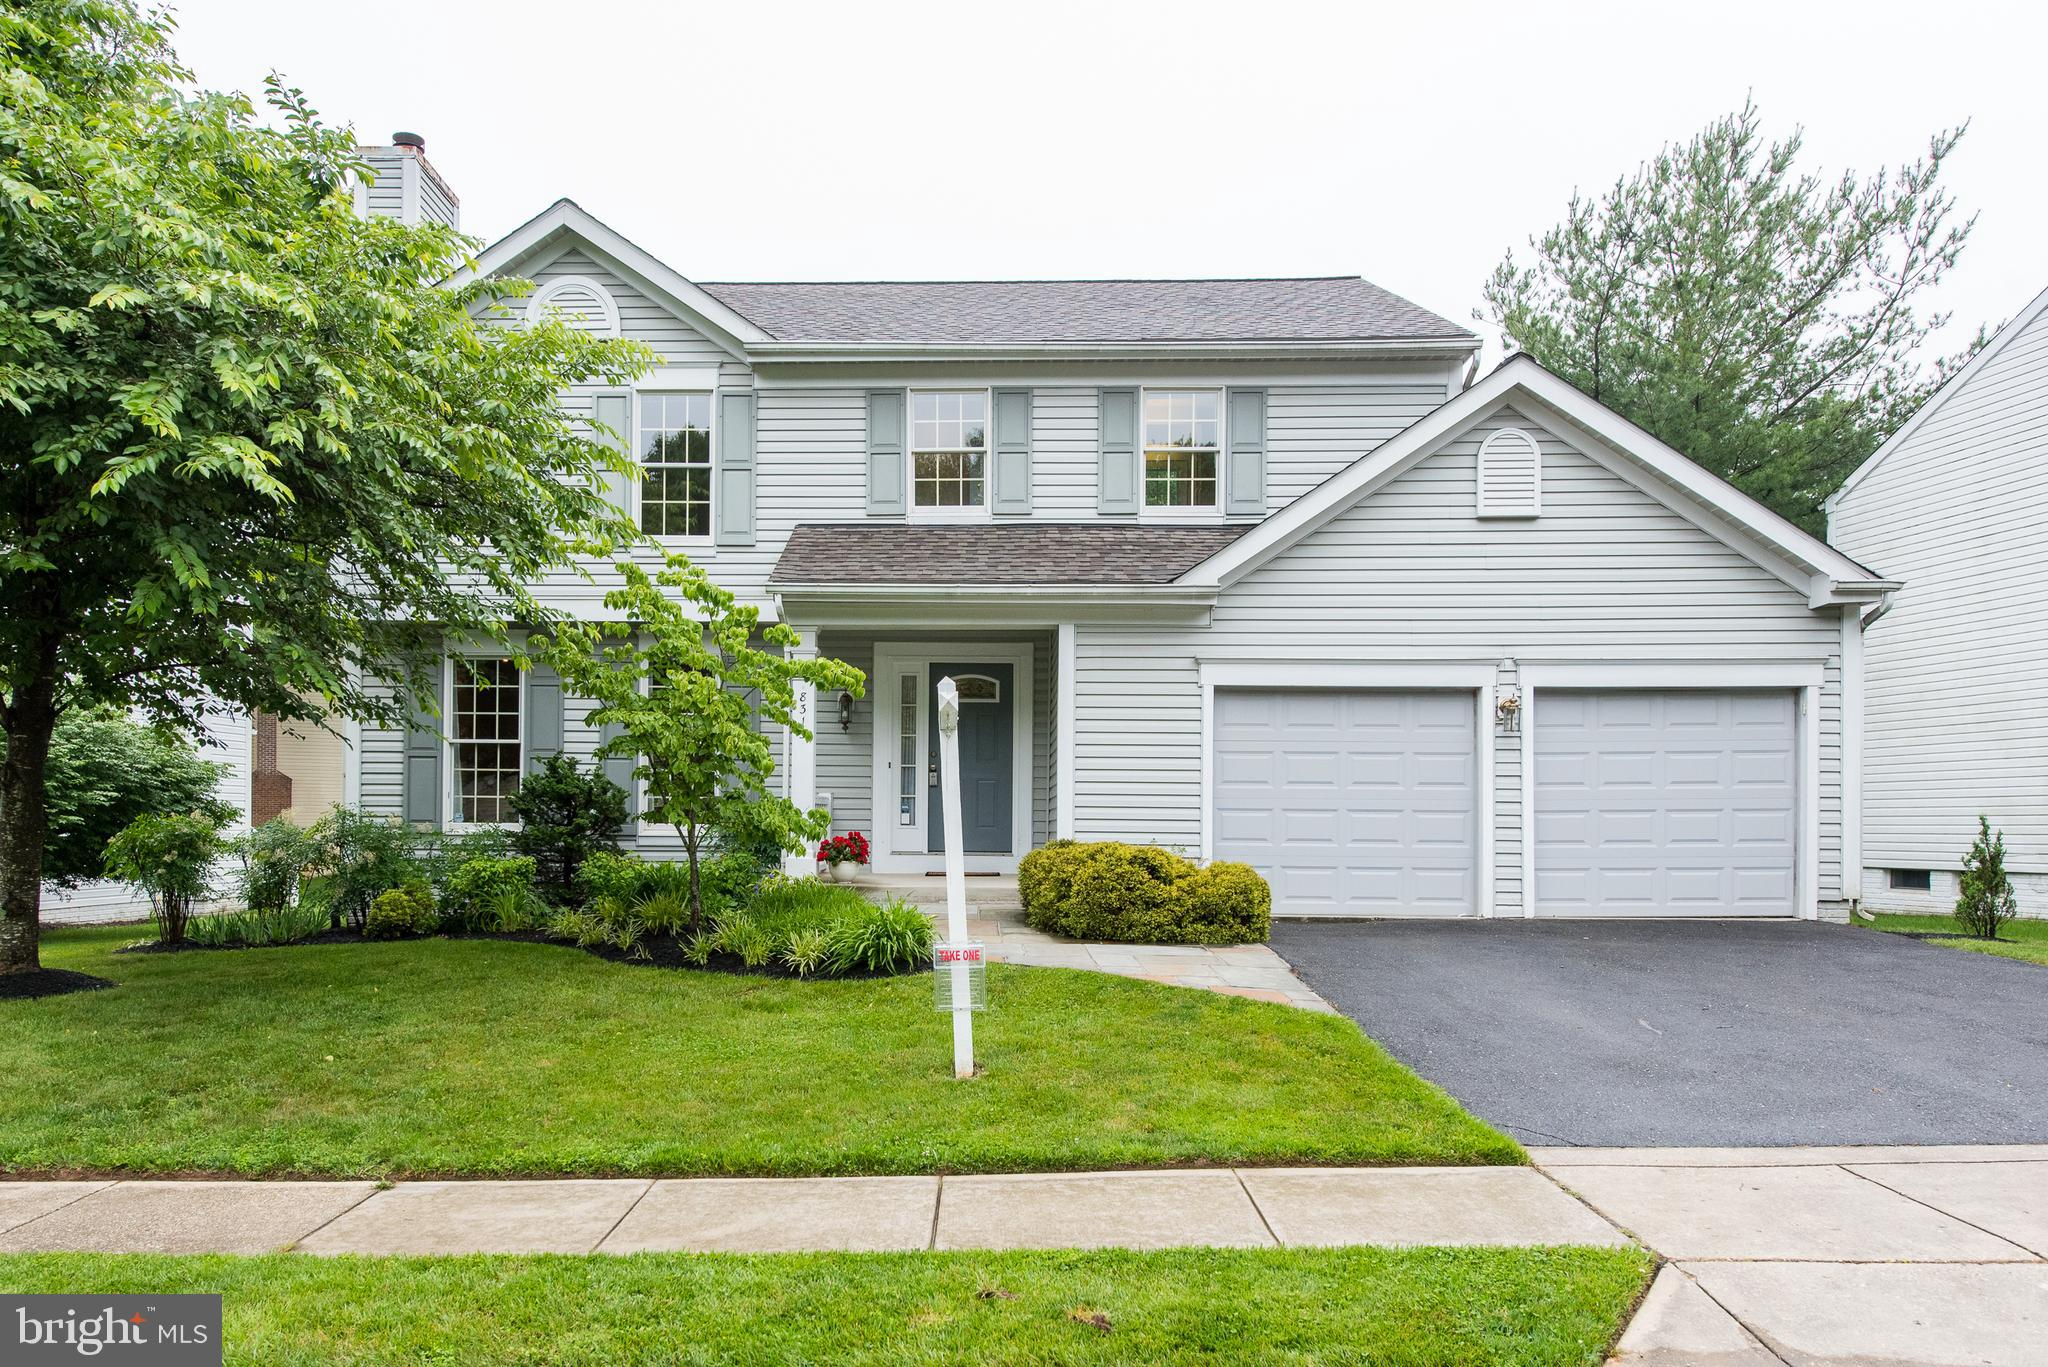 8315 PAINTED ROCK ROAD, COLUMBIA, MD 21045